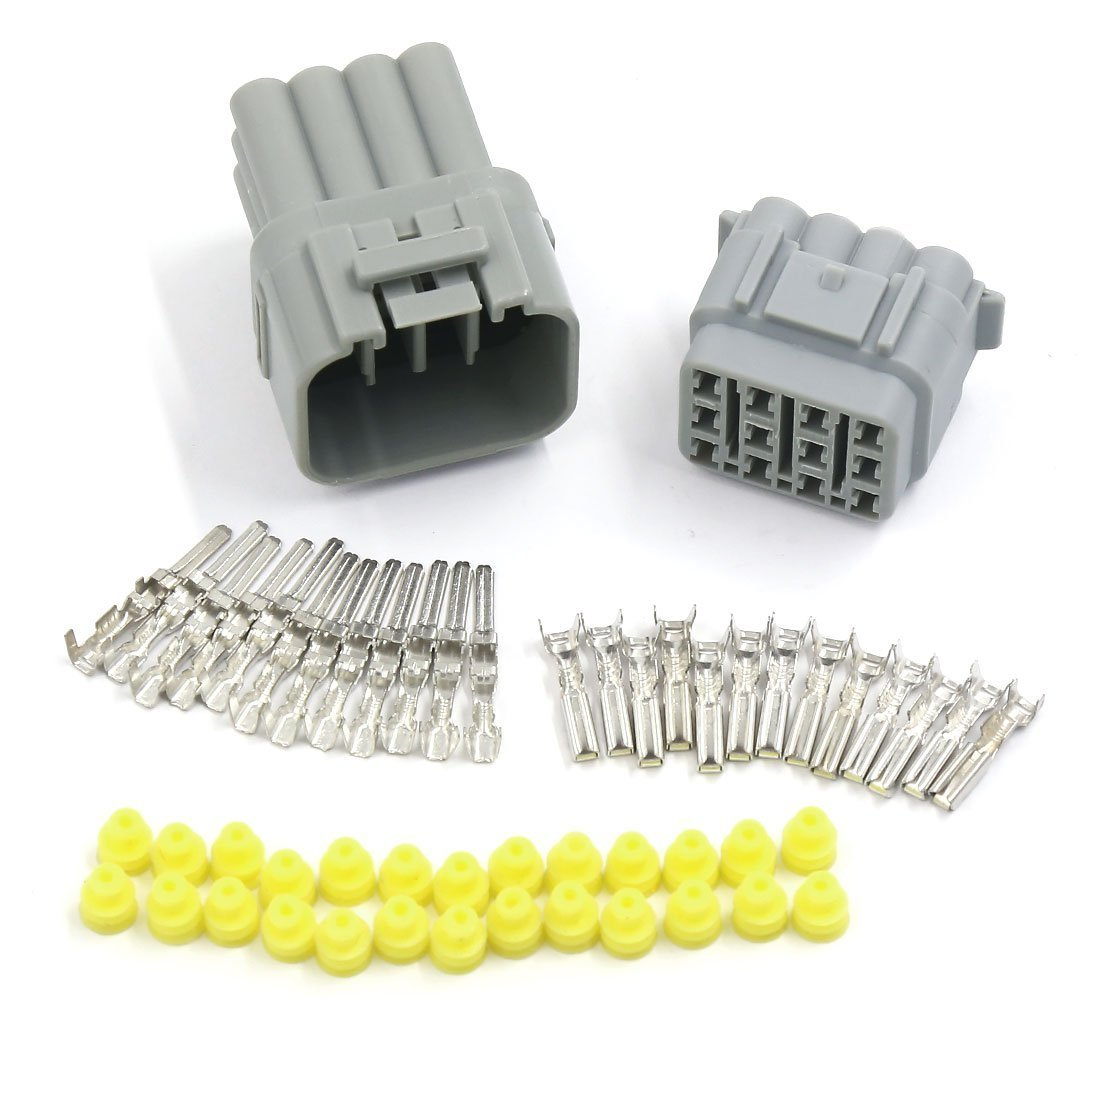 420x Non-Insulated Crimp Terminals Electrical Wiring Connectors Assortment